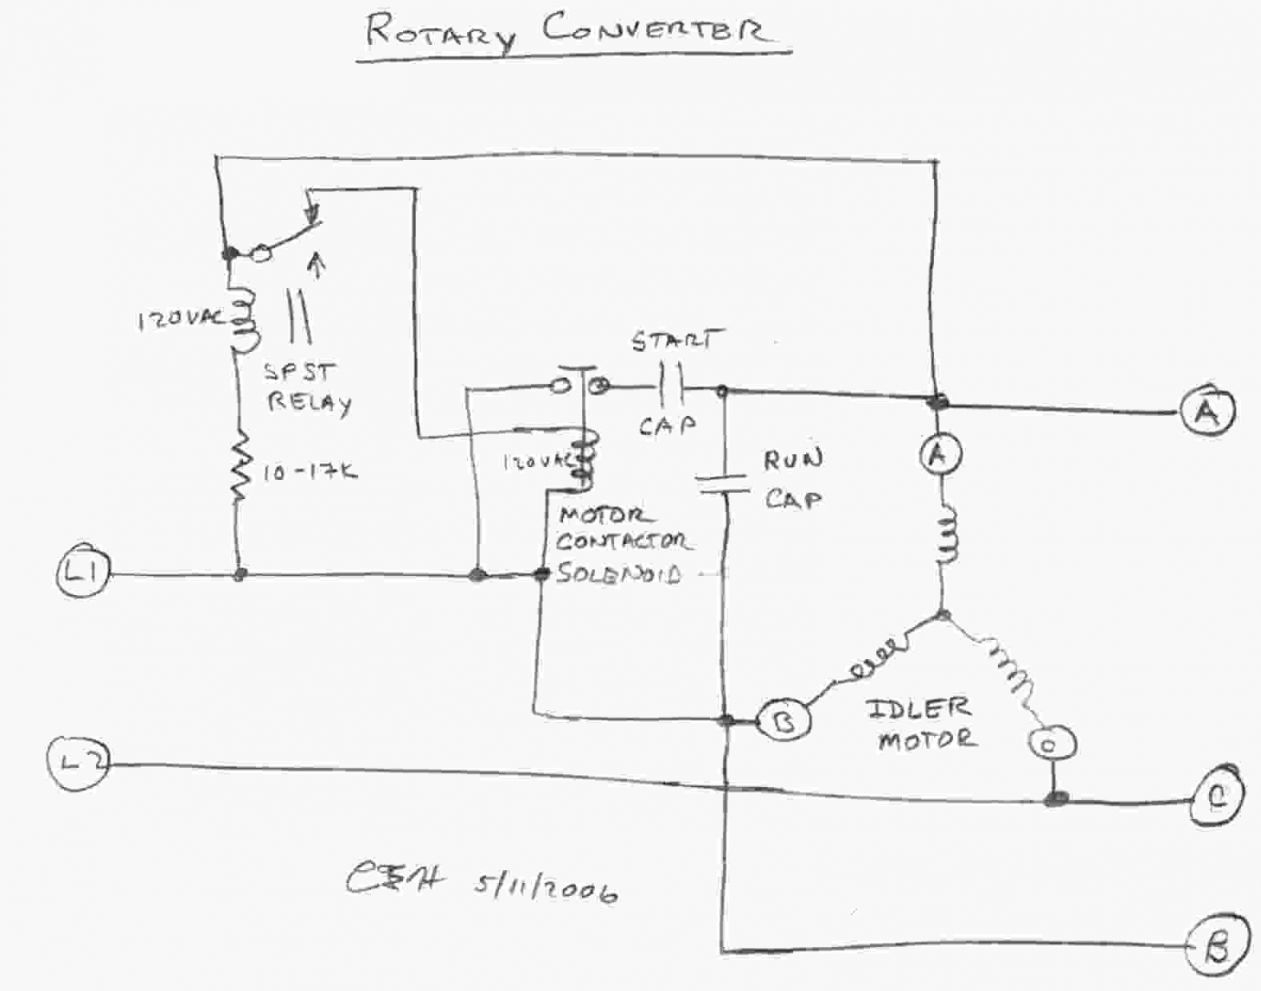 3 Phase Rotary Converter Wiring Diagram Download